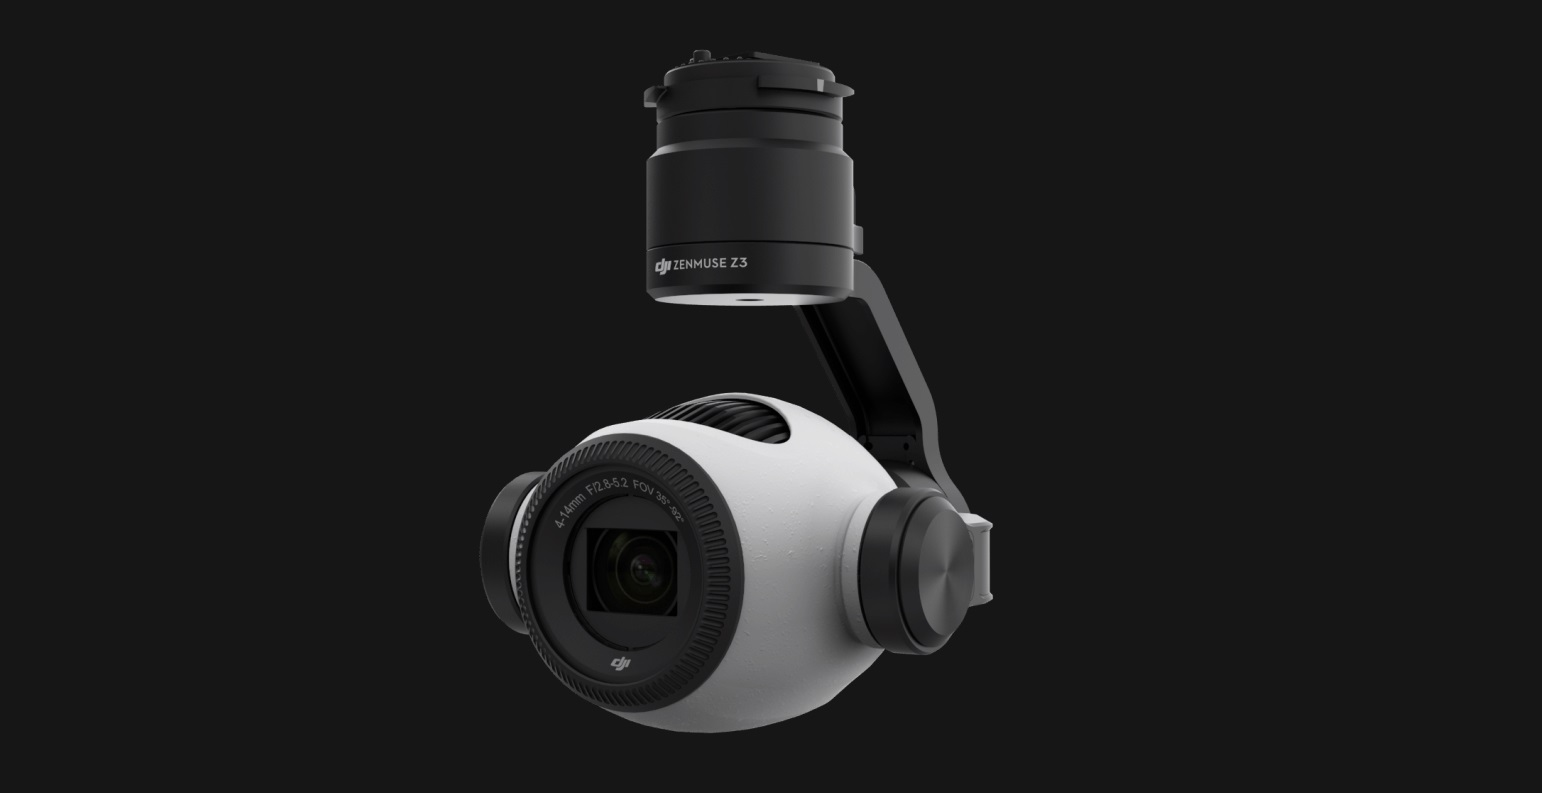 DJI Zenmuse Z3 7 x Zoom for Inspire / Matrice